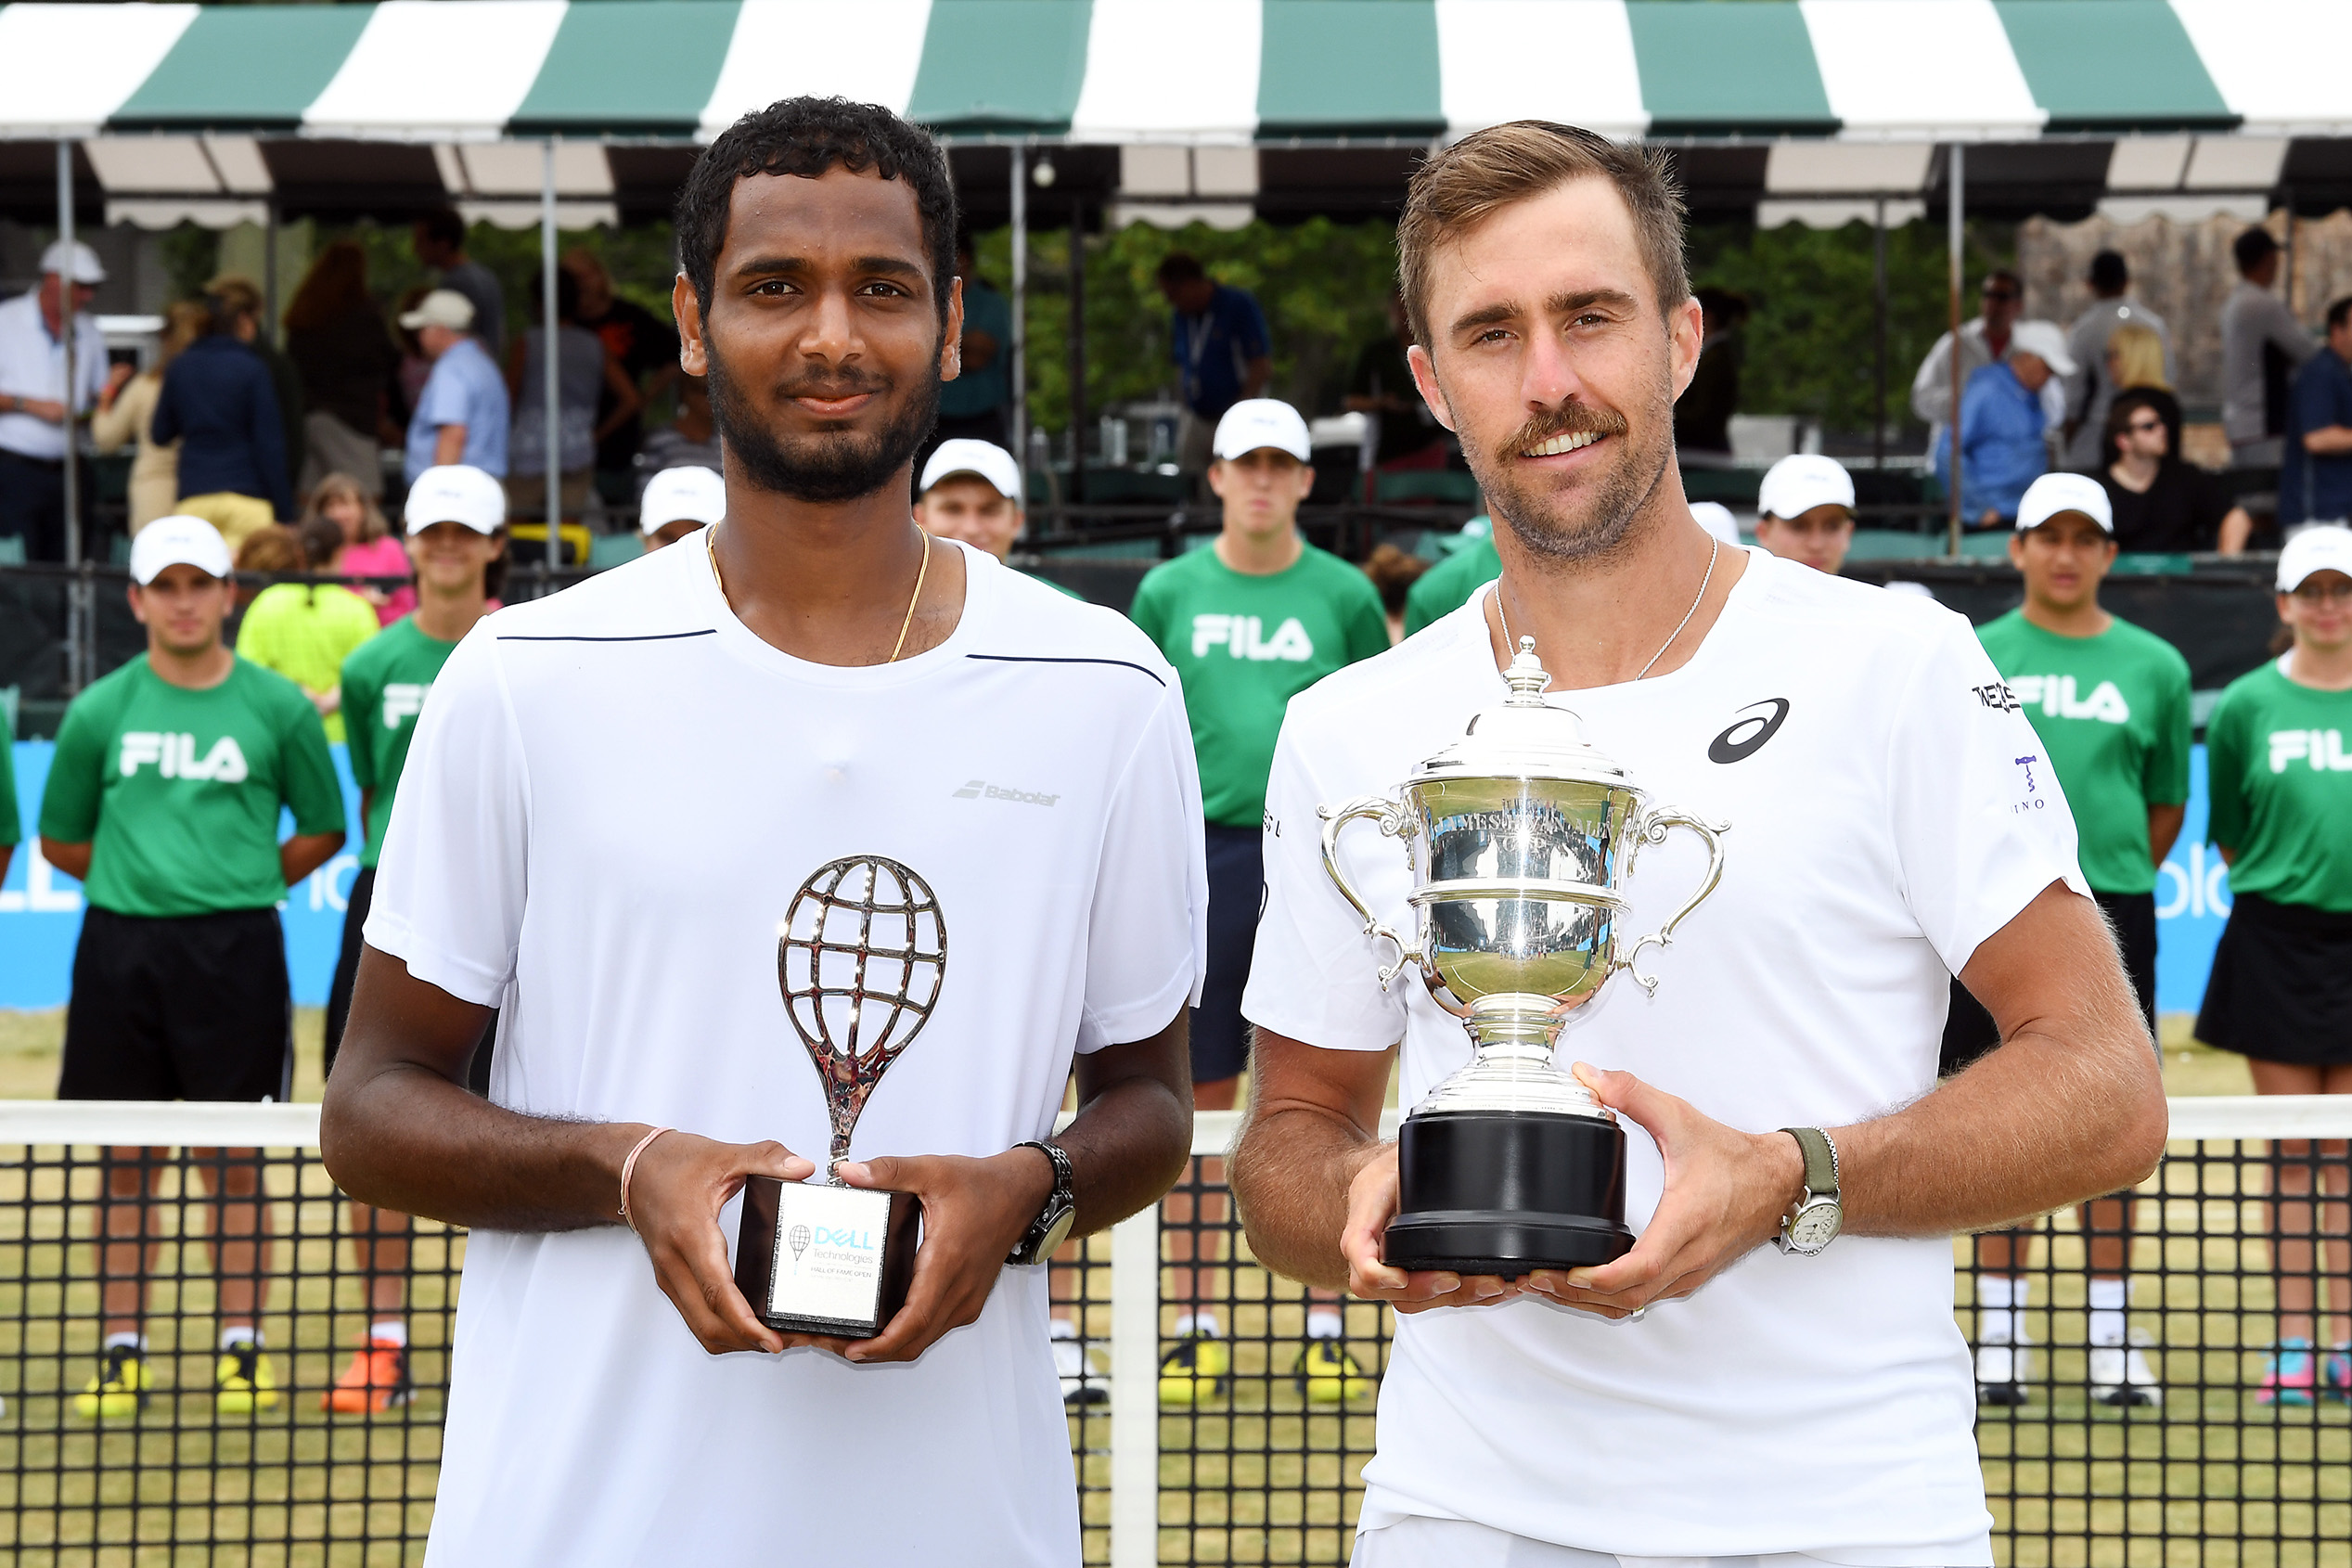 July 22, 2018 - Singles Champion Steve Johnson and finalist Ramkumar Ramanathan at the Dell Technologies Hall of Fame Open at the International Tennis Hall of Fame in Newport, Rhode Island. (Ben Solomon/ITHF)